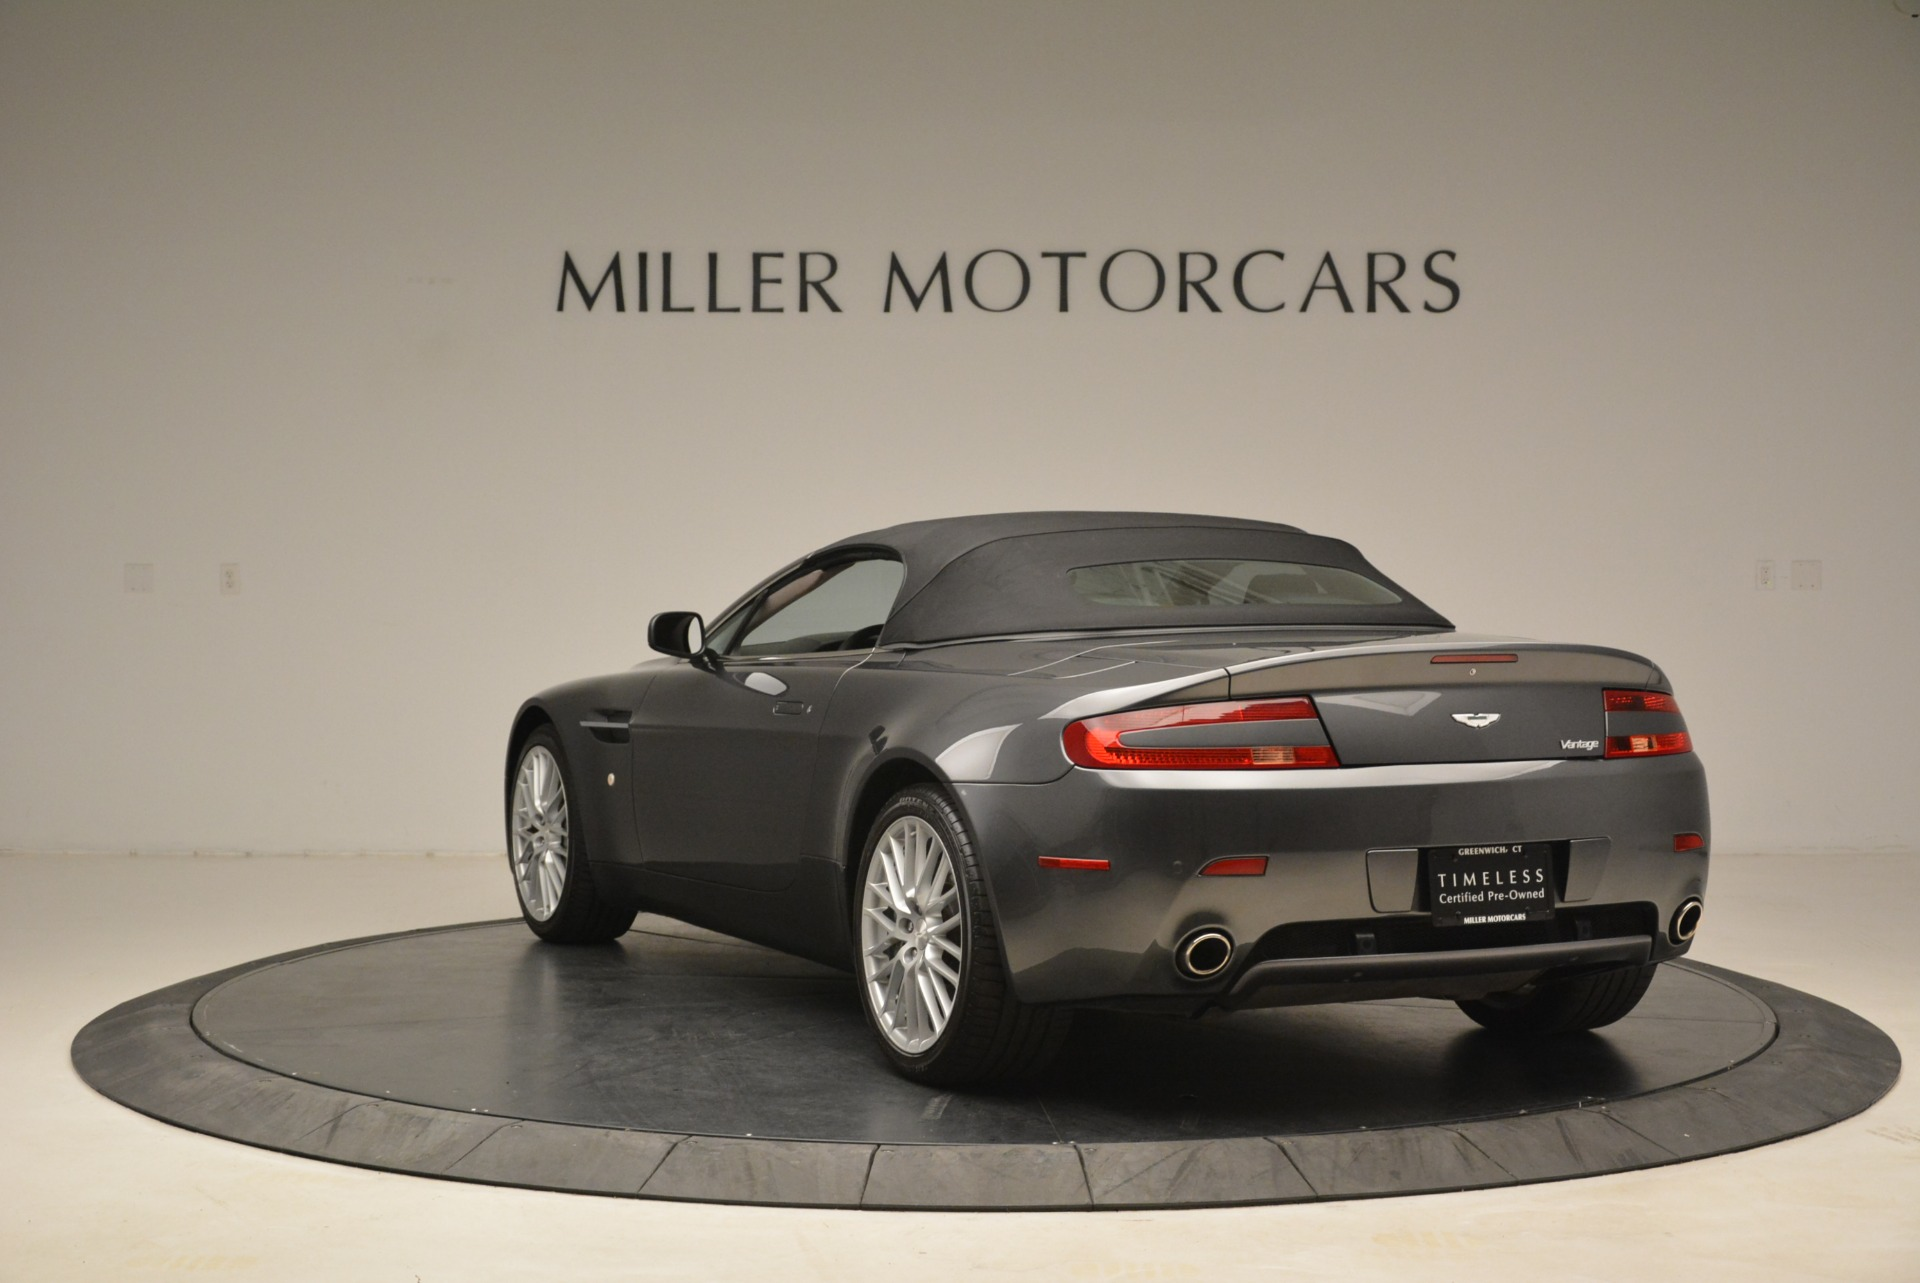 Used 2009 Aston Martin V8 Vantage Roadster For Sale In Greenwich, CT 2123_p17